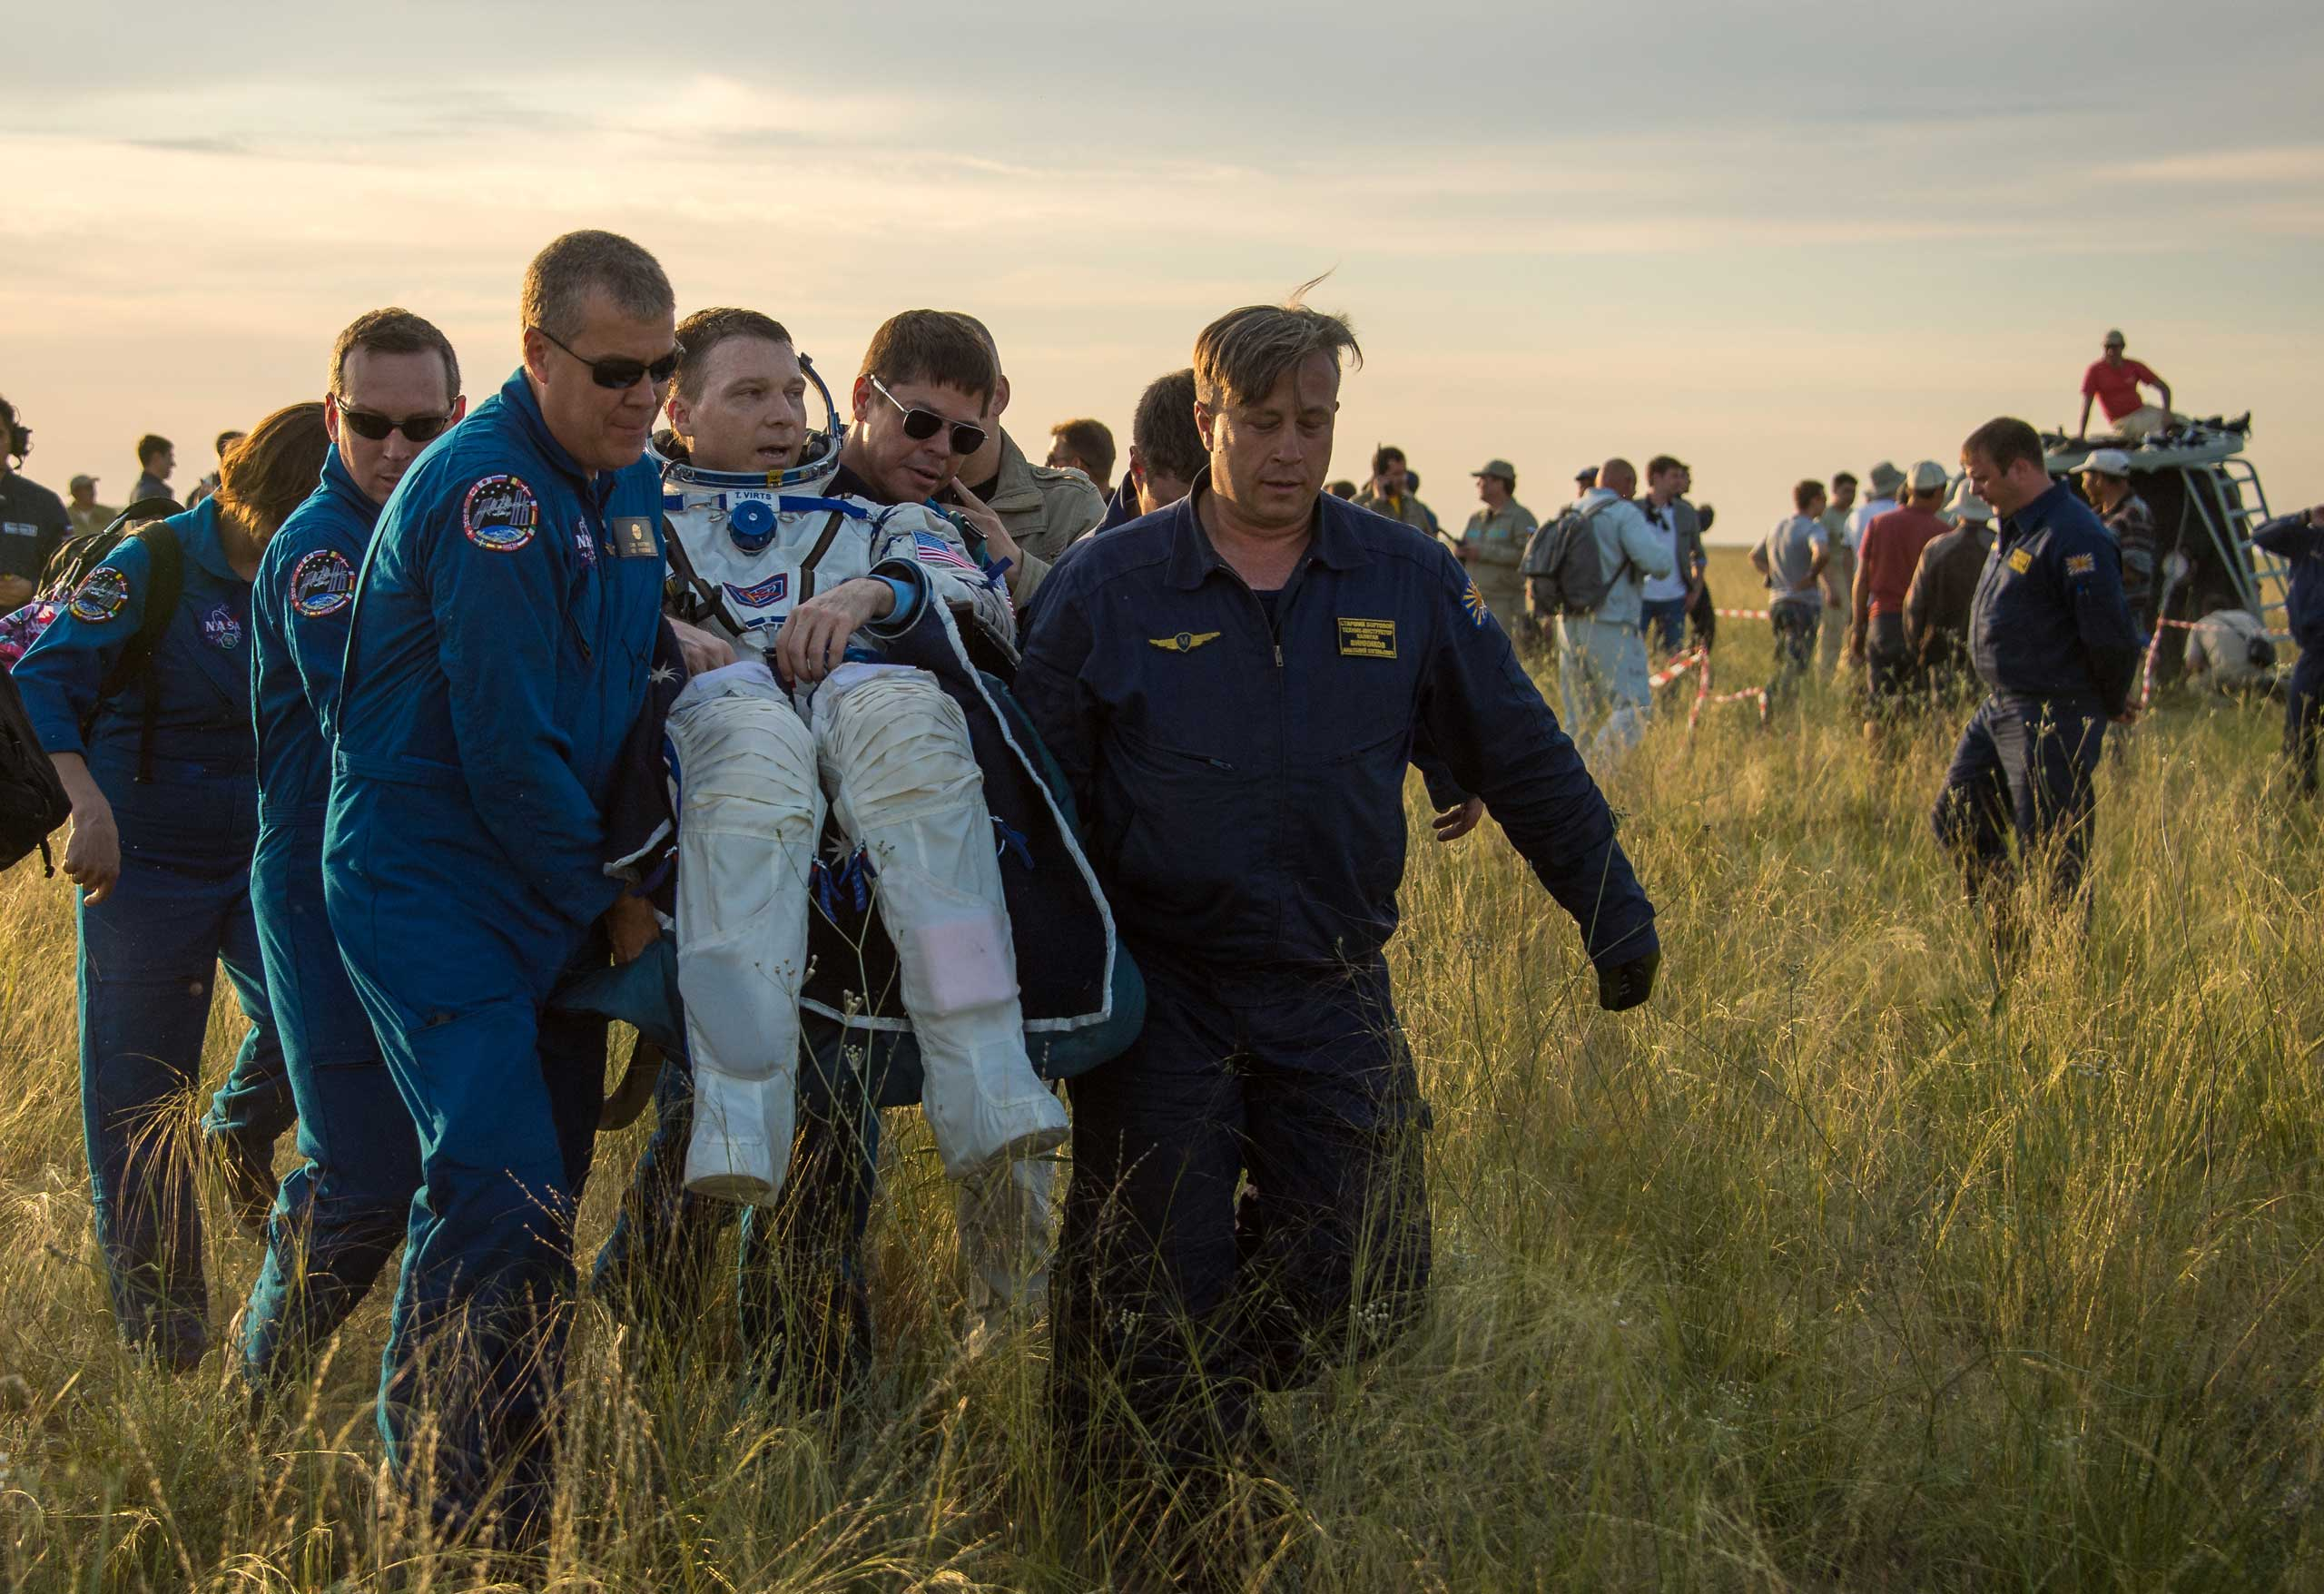 Shortly after his return from space, Virts is carried into a medical tent near the town of Zhezkazgan, Kazakhstan on June 11, 2015.